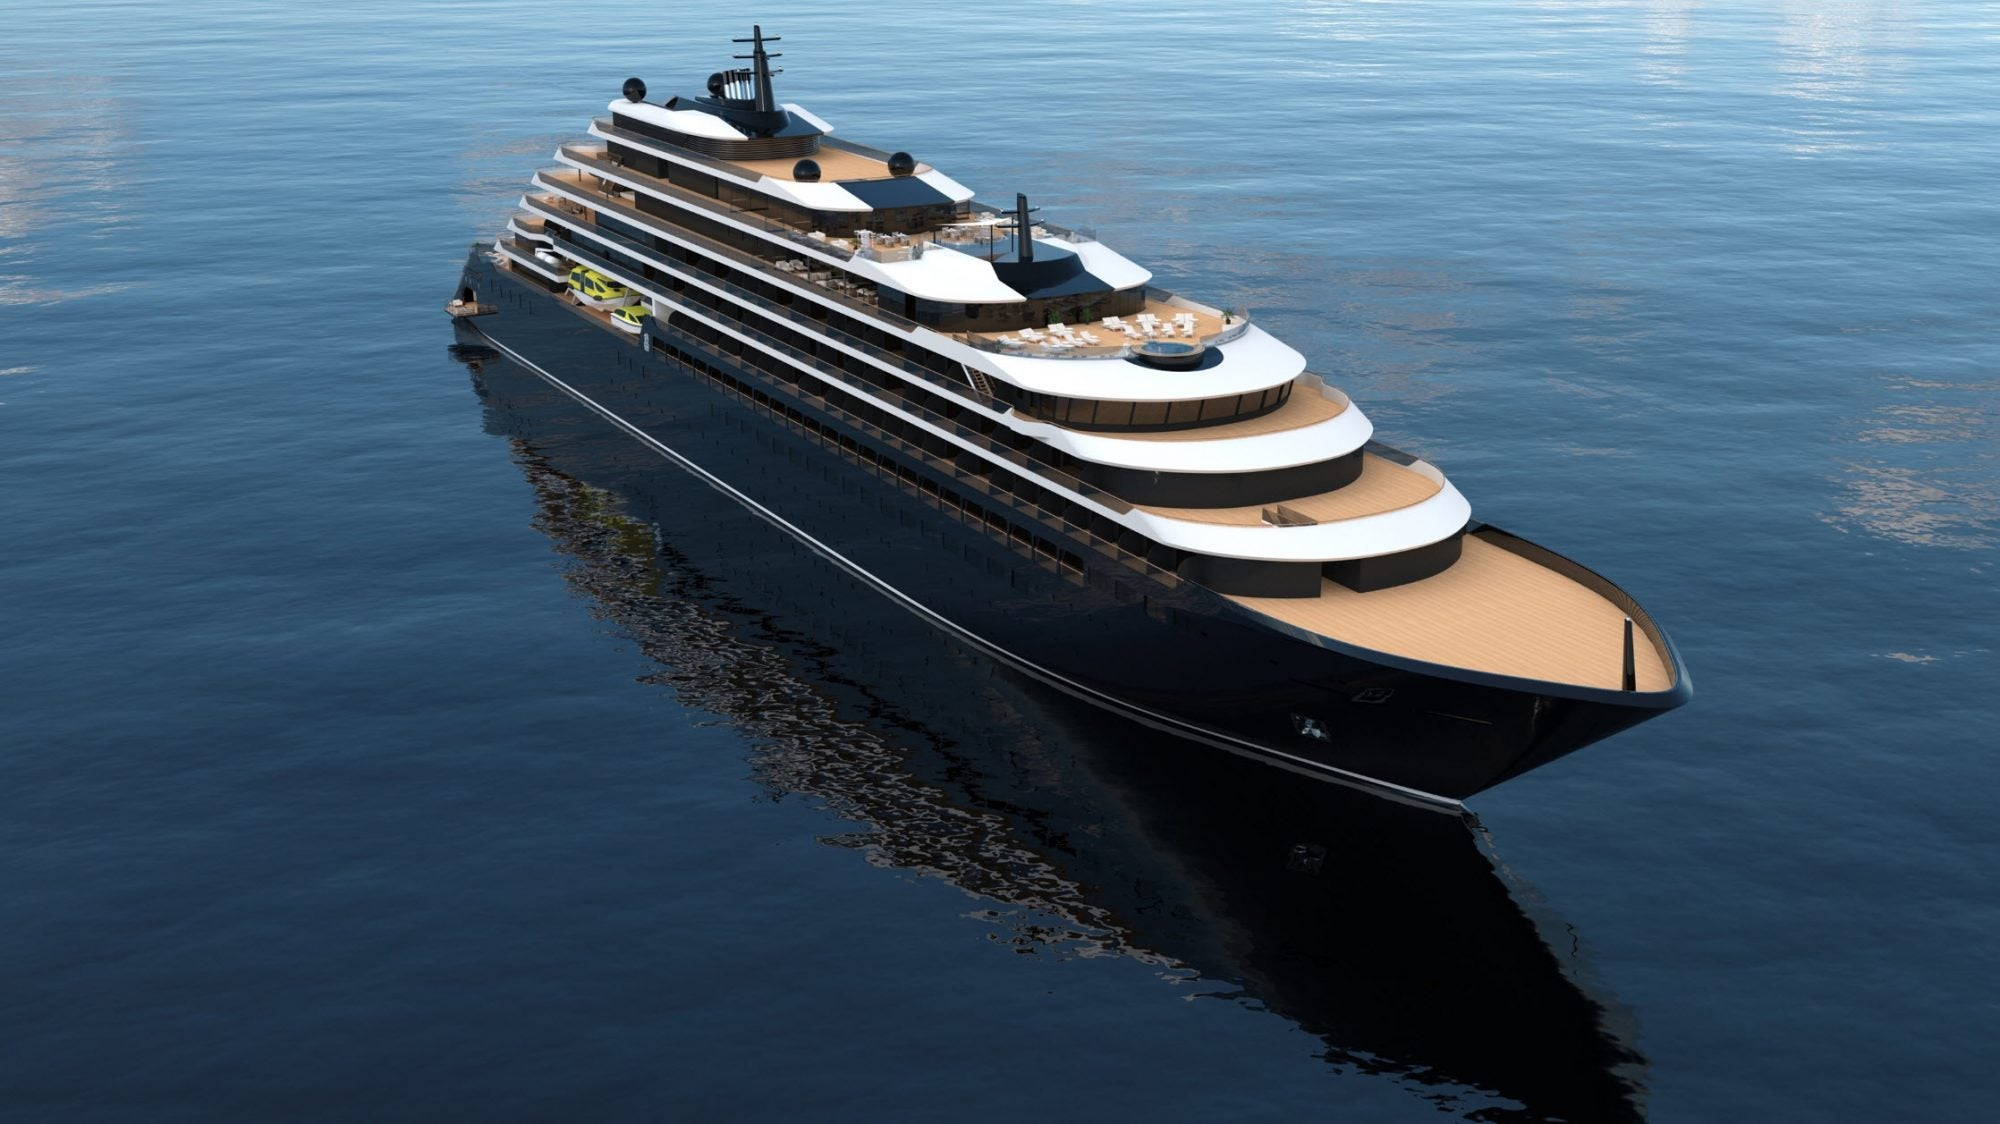 Get Ready to Cruise With Marriott as They Take to the Seas With The Ritz-Carlton Luxury Yacht Collection